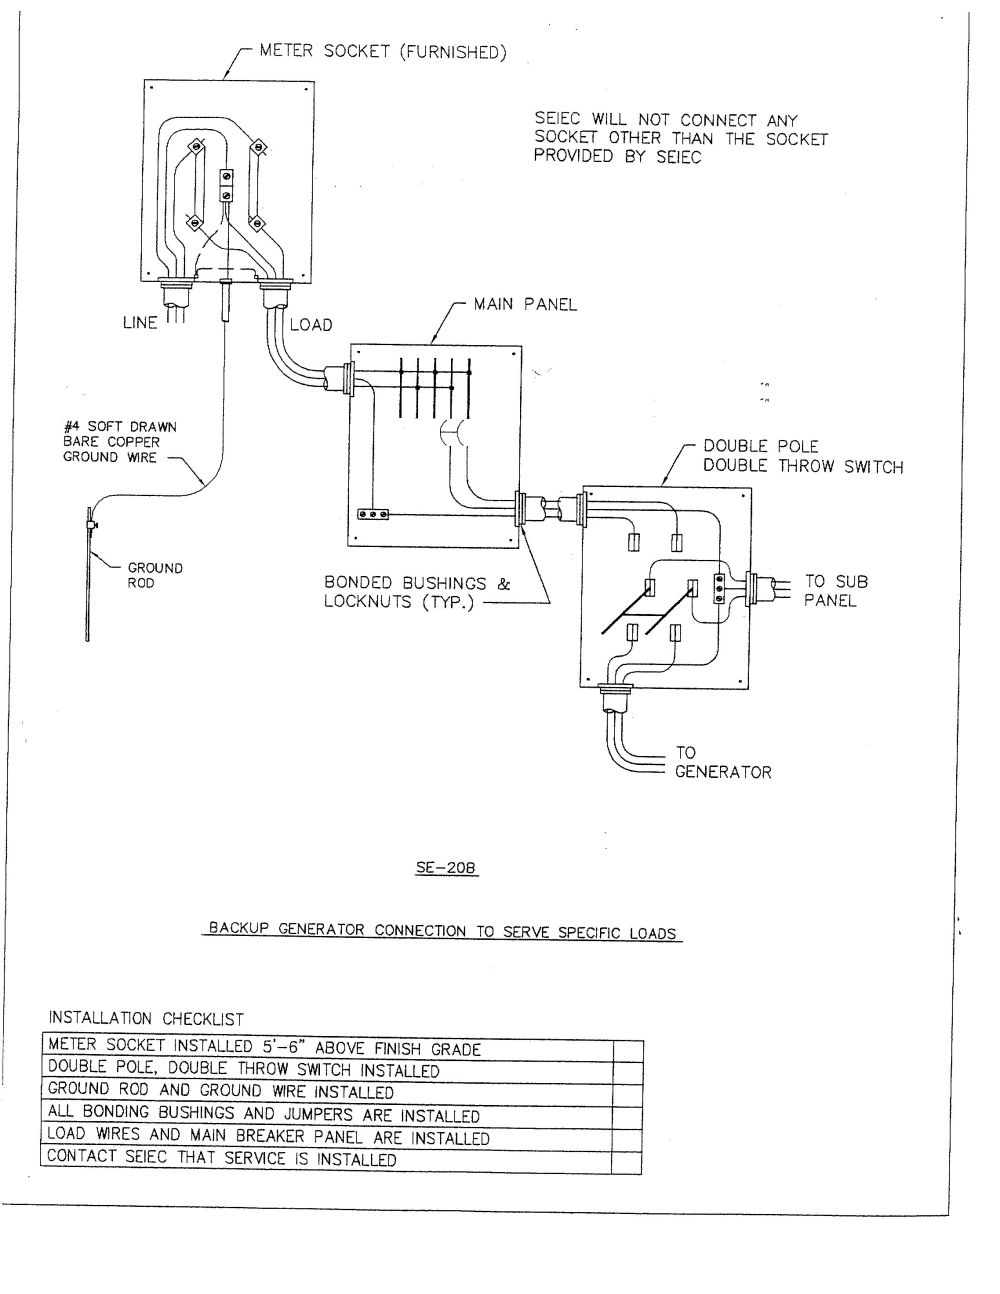 medium resolution of transfer switch diagram for backup generation